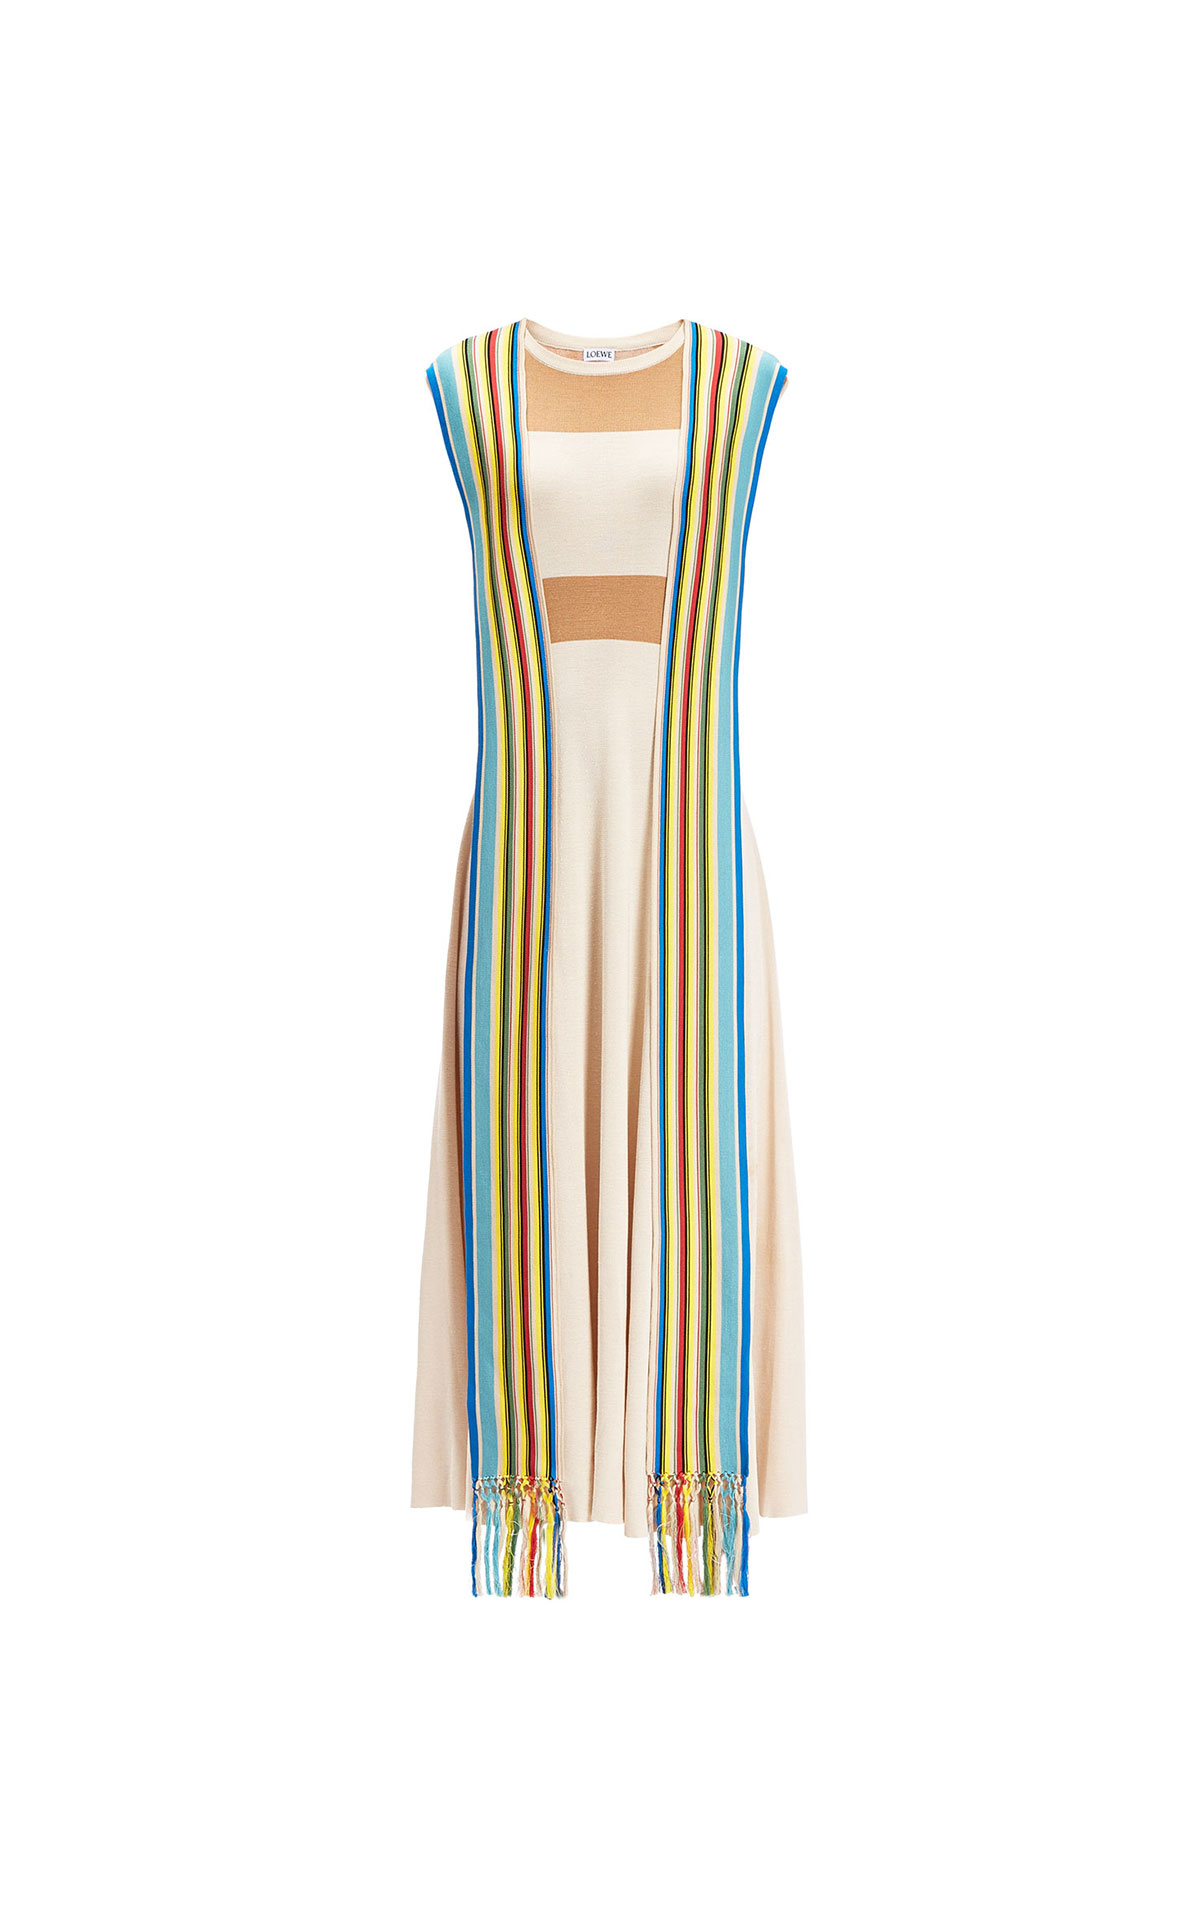 Loewe Multicolour knit dress